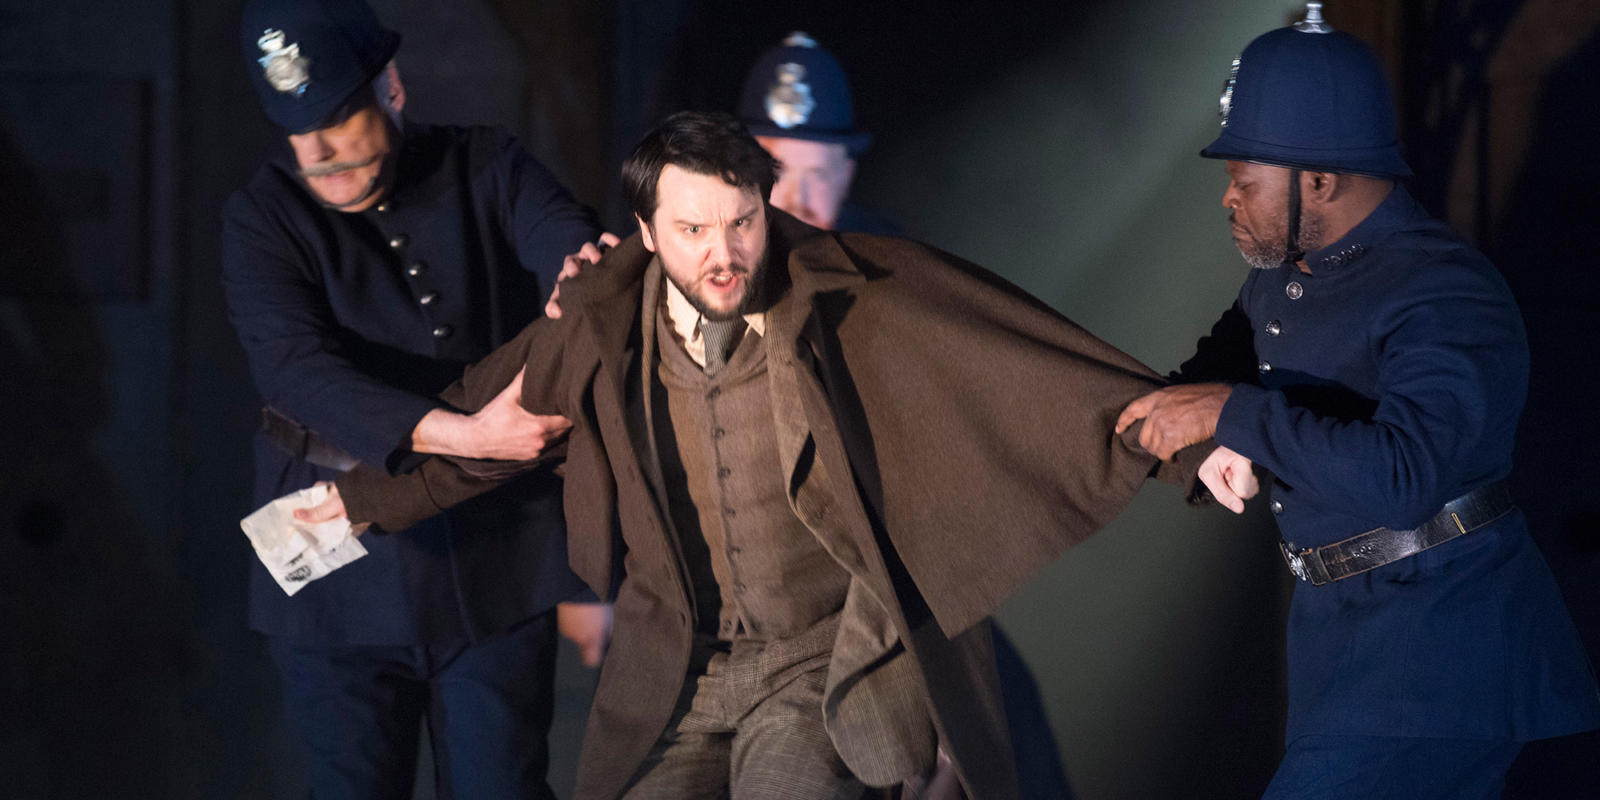 ENO 2018/19 Jack the Ripper: The Women of Whitechapel: William Morgan as The Writer © Alastair Muir